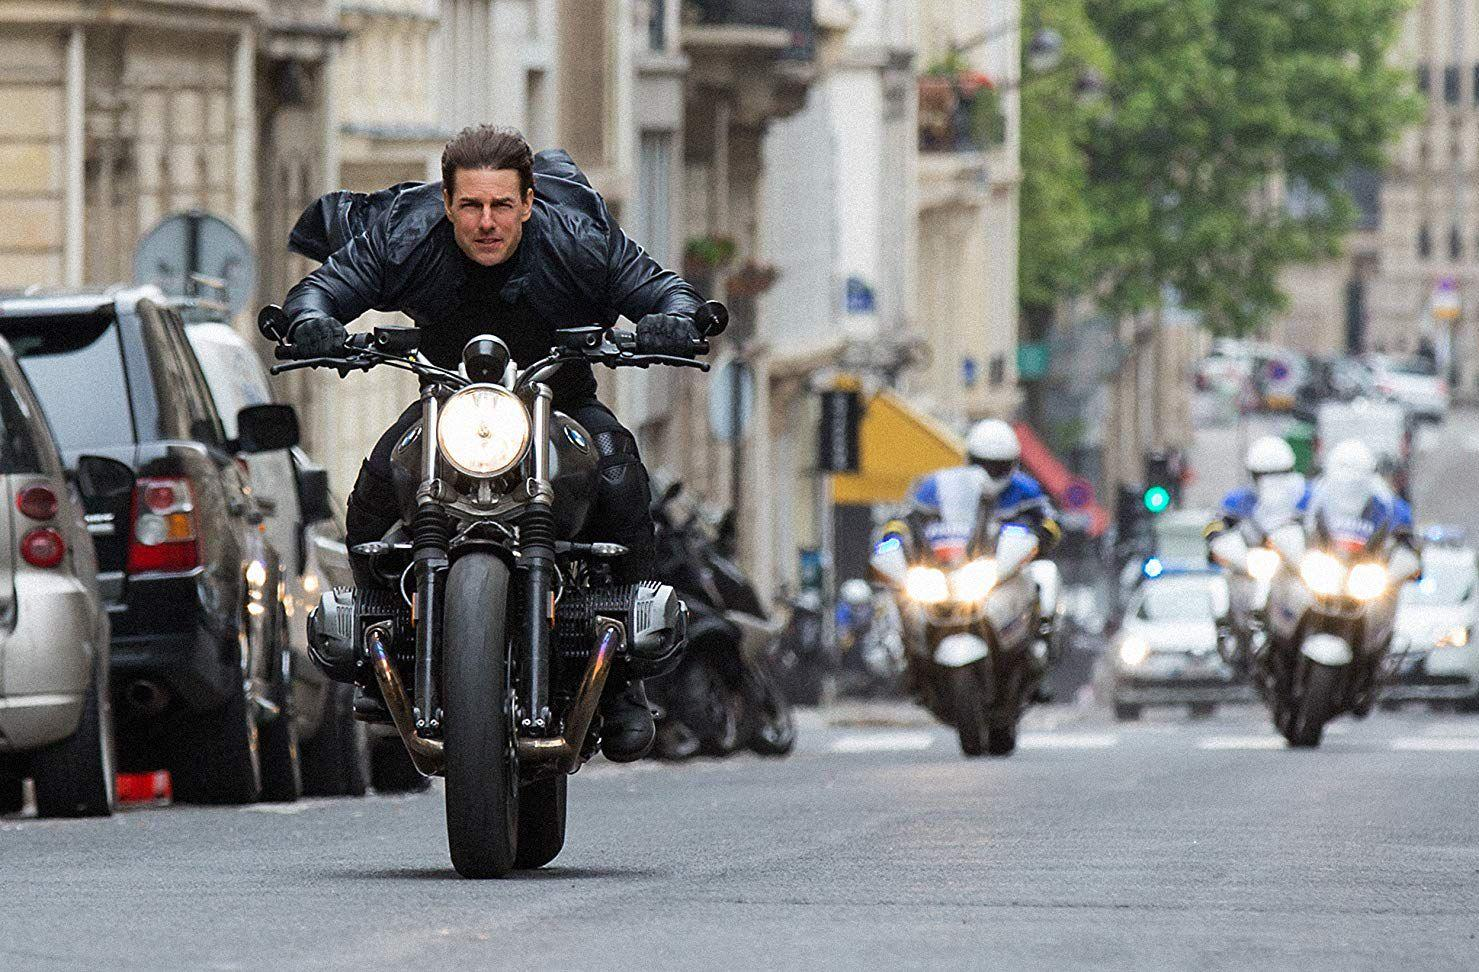 """Mission: Impossible – Fallout"" brings impressive action without much substance"